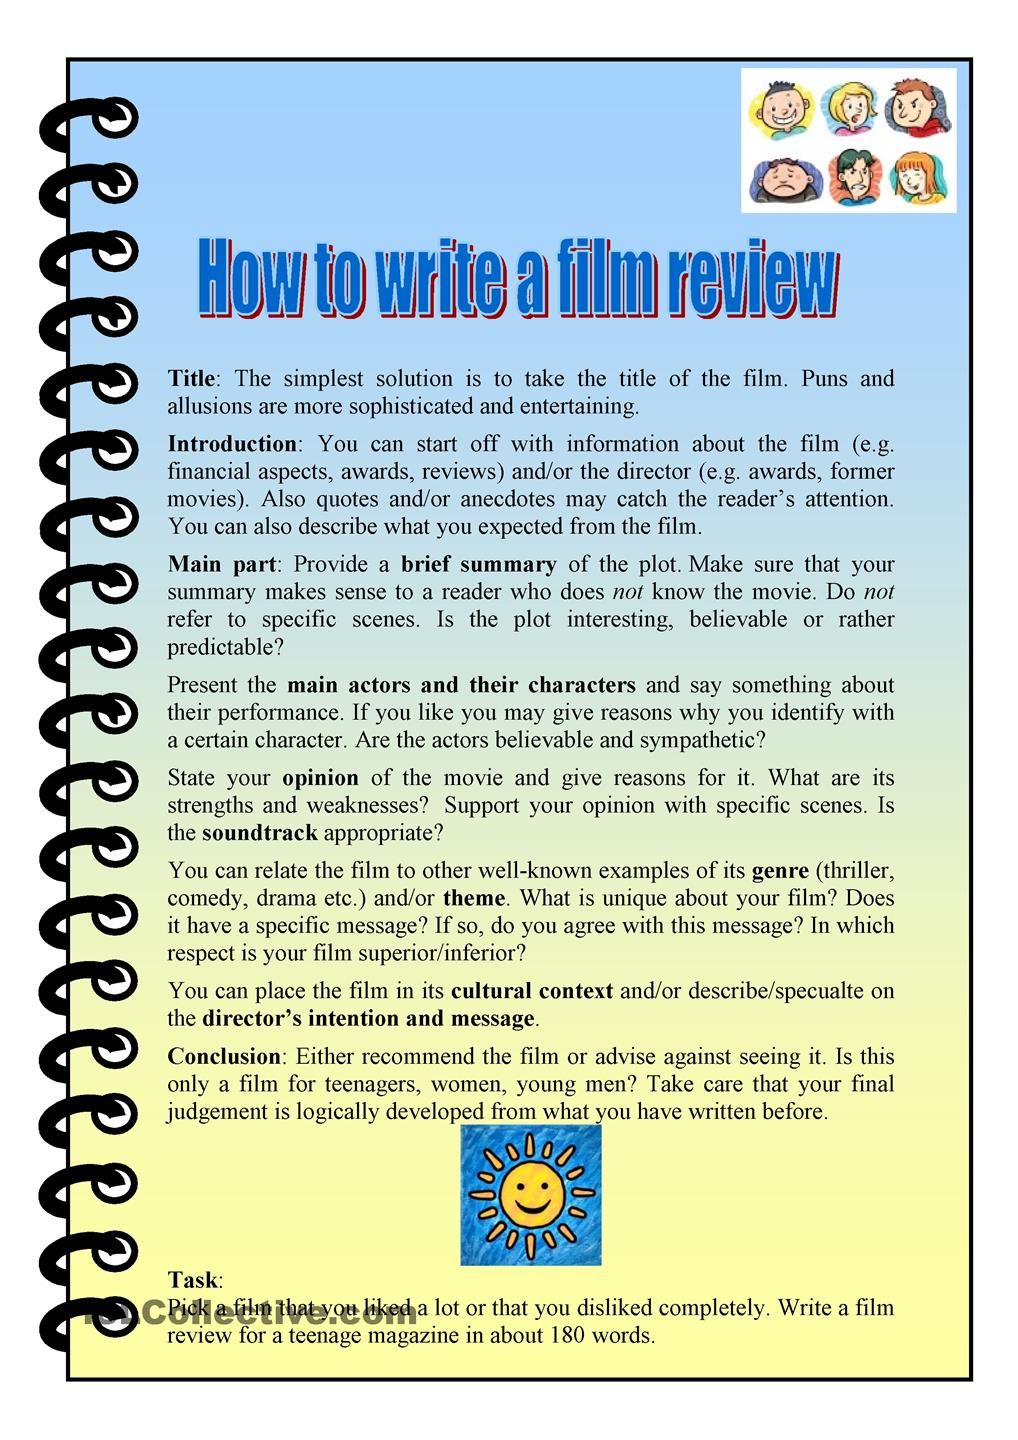 a movie reviewstudy film review it pictures to pin a movie review 1492759870